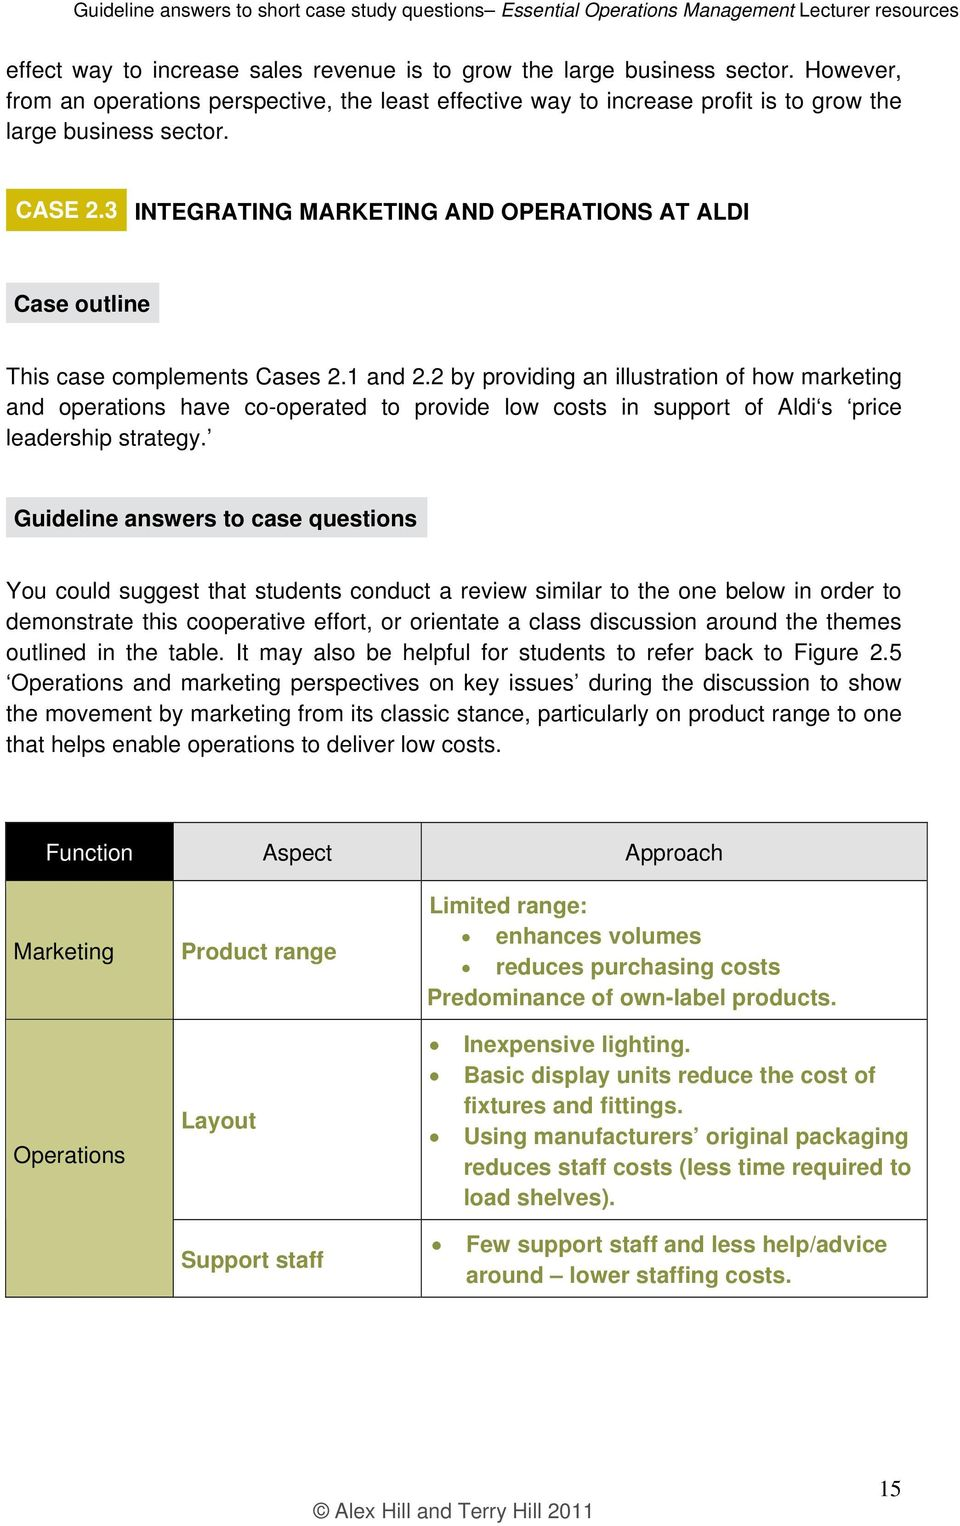 Essential Operations Management Lecturer resources  Guideline